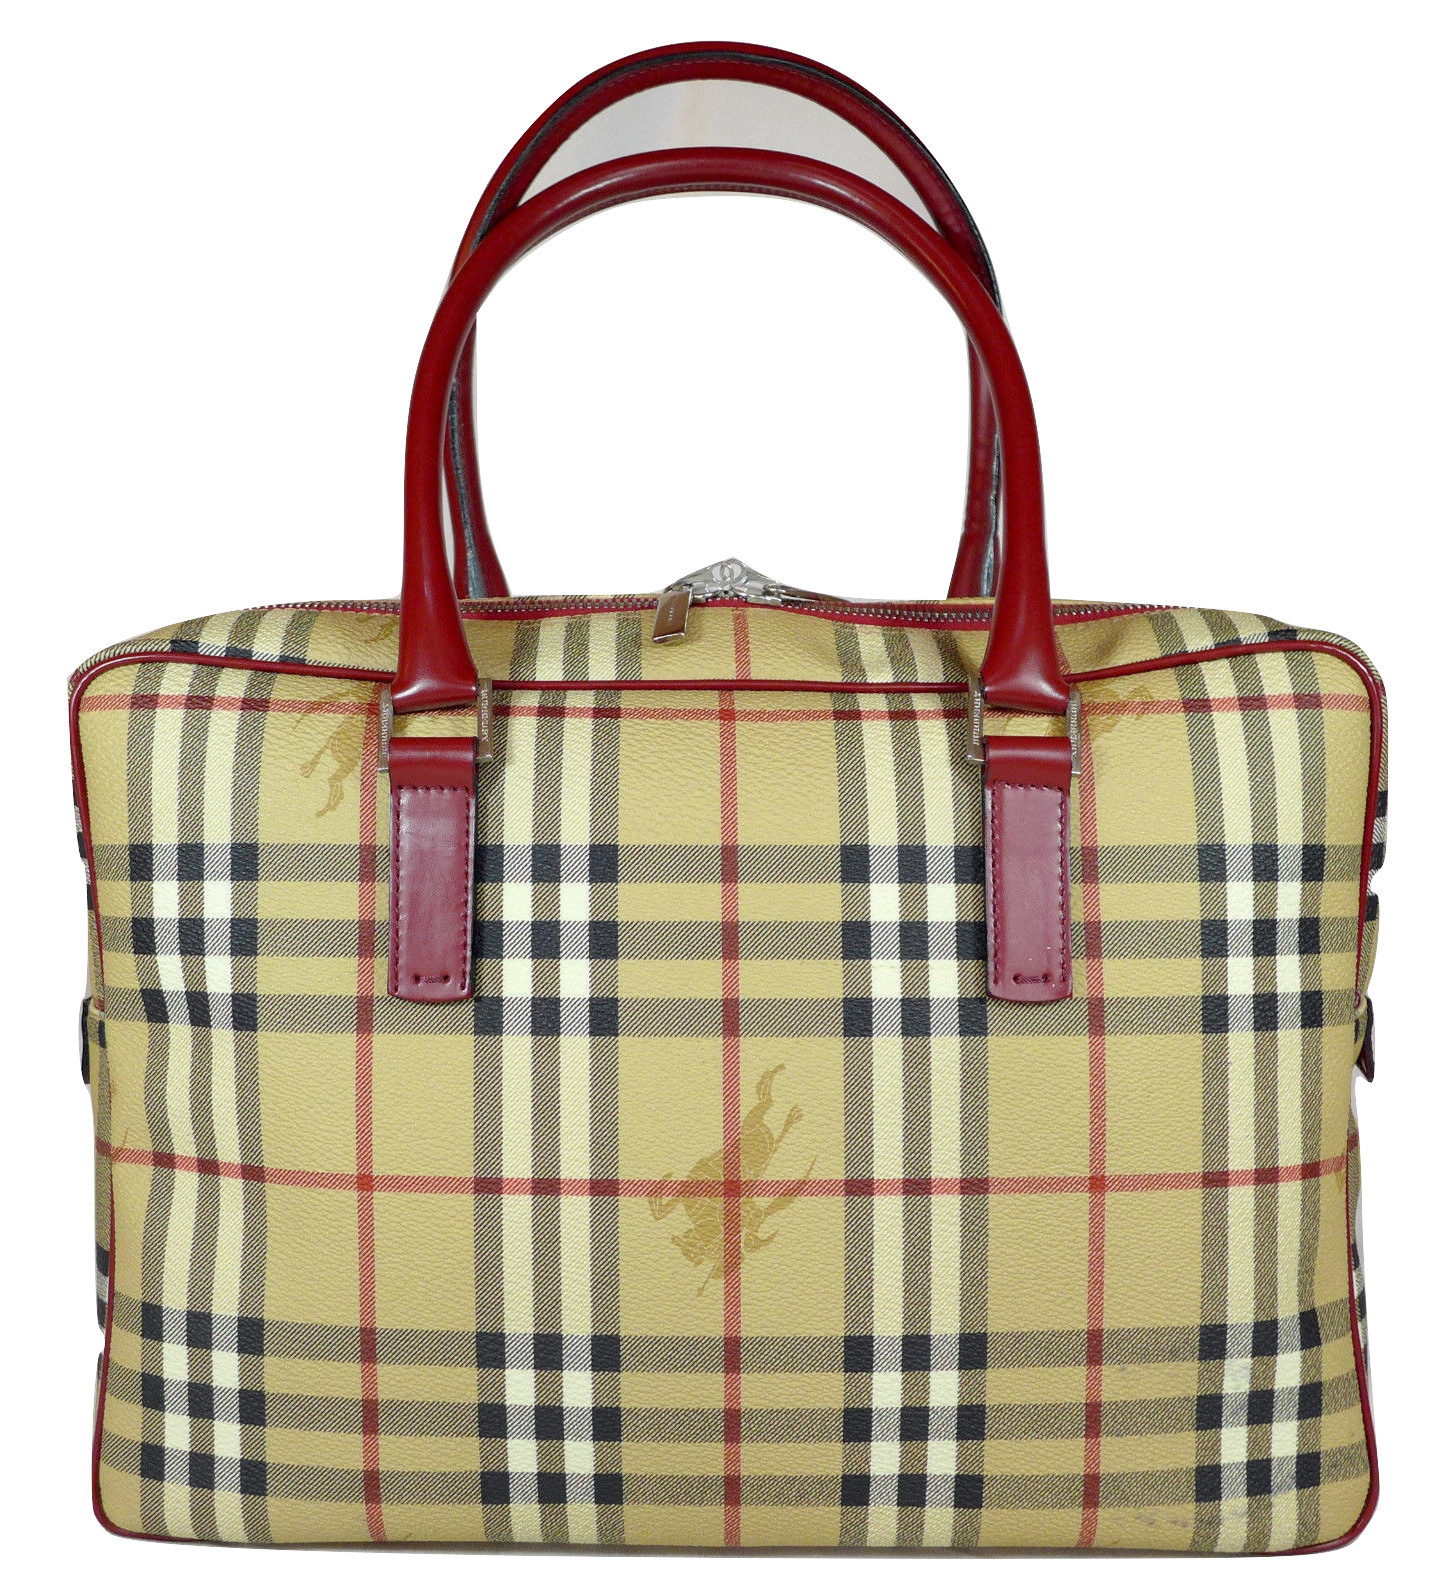 0afabbdfb120 Burberry Classic Check Large Designer Bag - and 49 similar items